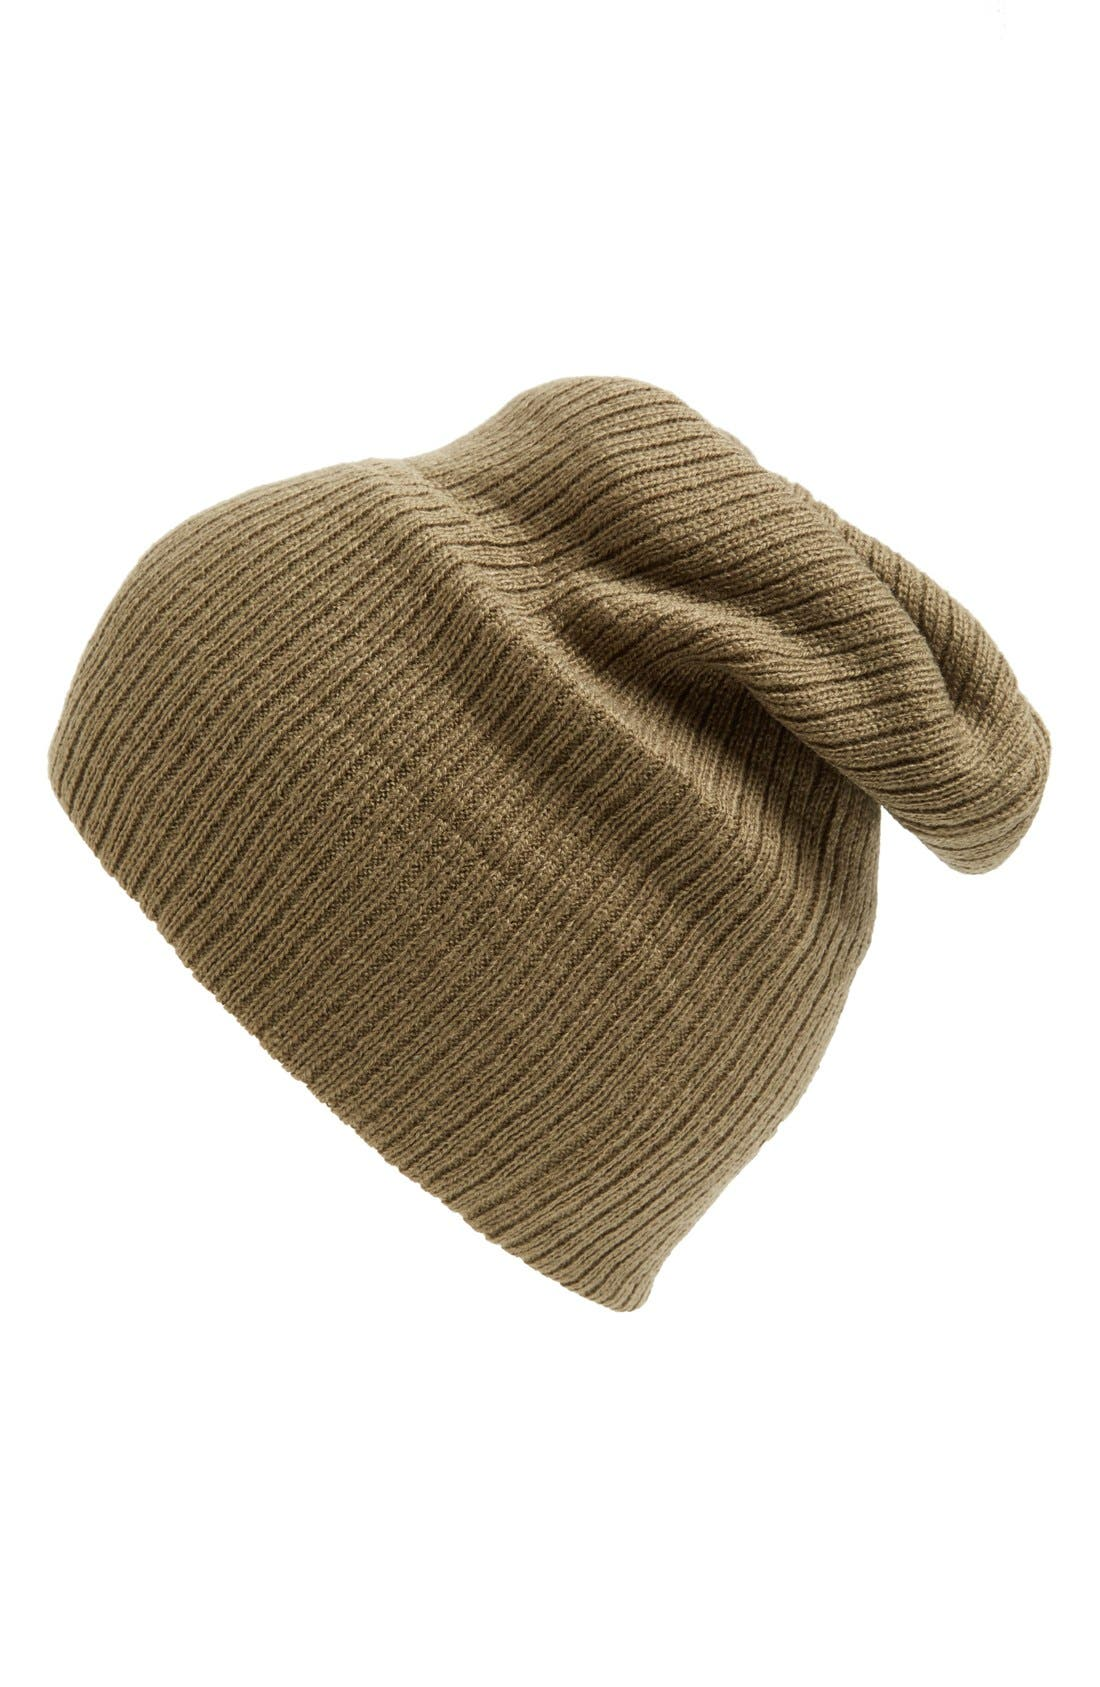 Alternate Image 1 Selected - BP. Slouchy Ribbed Beanie